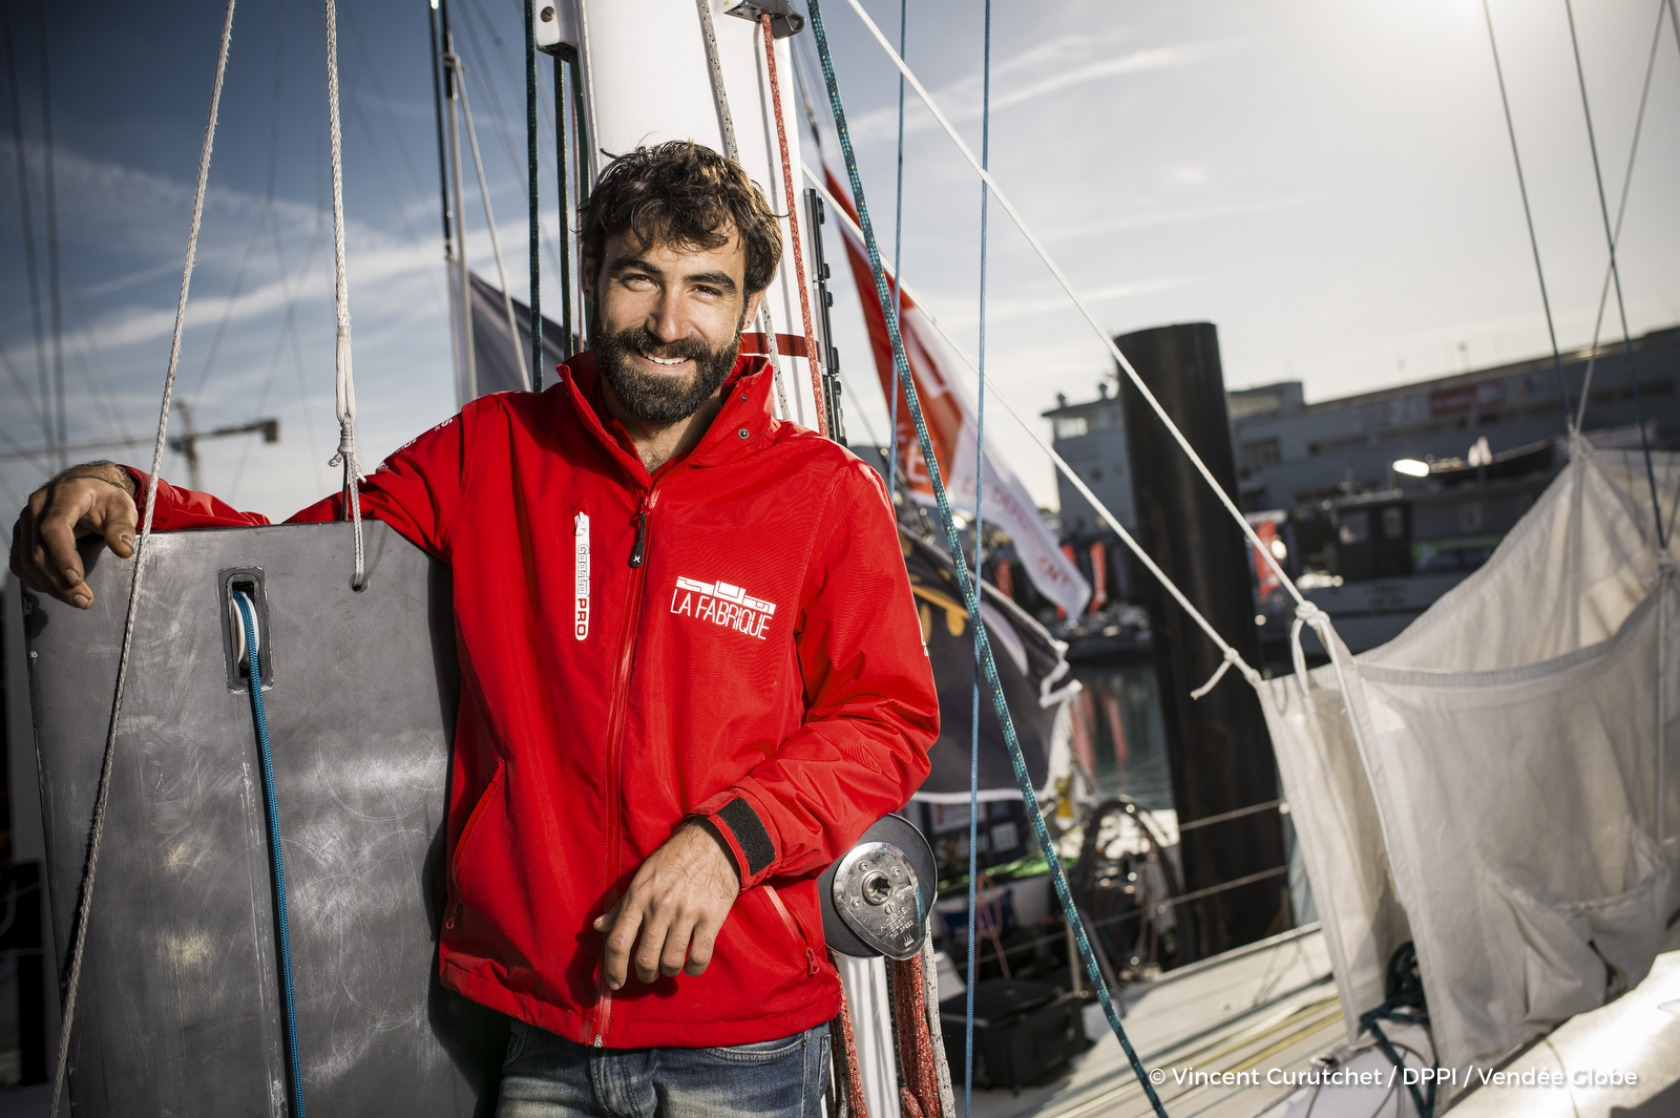 Alan Roura (SUI), skipper La Fabrique, portraited during prestart of the Vendee Globe, in Les Sables d'Olonne, France, on October 19th, 2016 - Photo Vincent Curutchet / DPPI / Vendee GlobePortrait de Alan Roura (SUI), skipper La Fabrique, aux Sables d'O